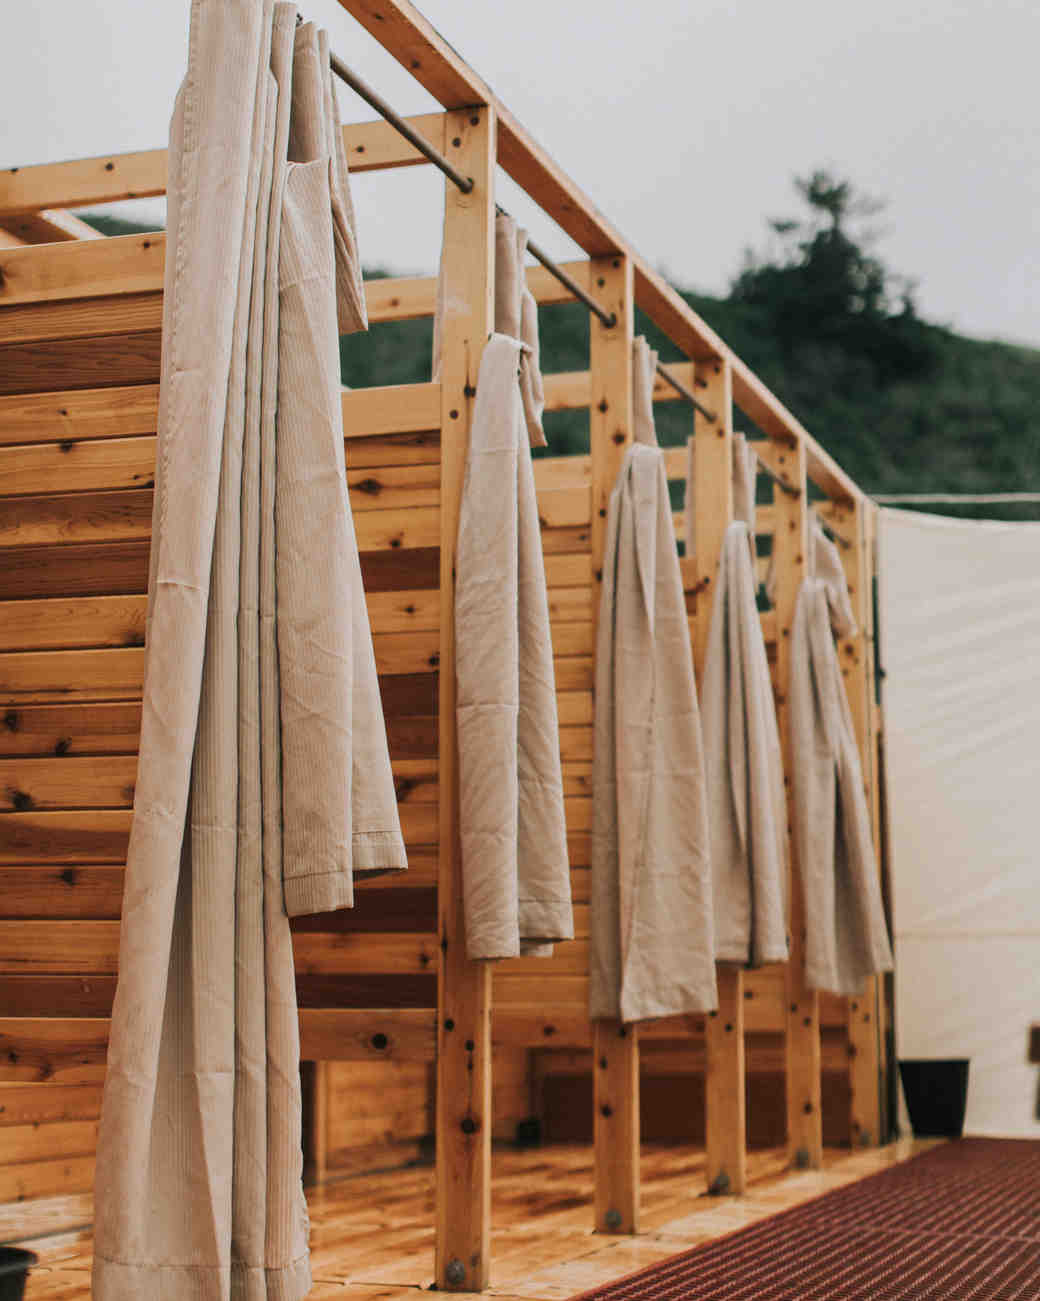 zai phil camping wedding welcome dinner showers stalls